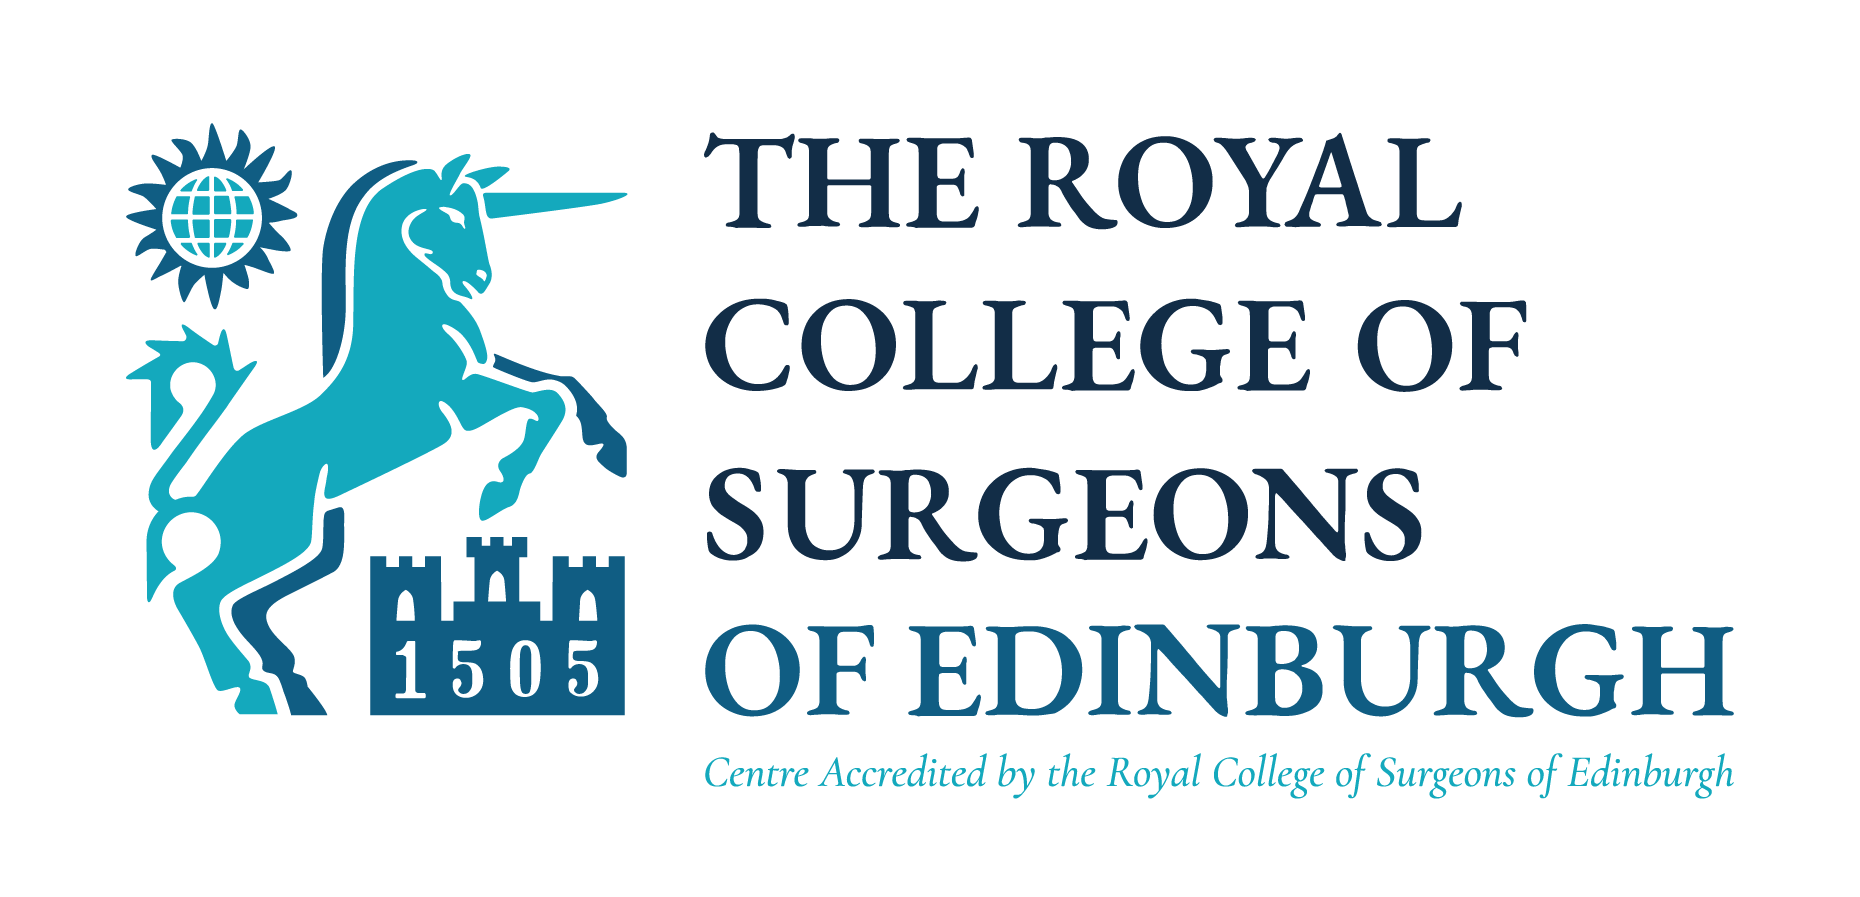 Intermediate Skills For Laparoscopic Surgeons Dundee Institute For Healthcare Simulation General Surgery Courses Laparoscopic Courses Surgical Skills Training Thiel Cadaver Courses